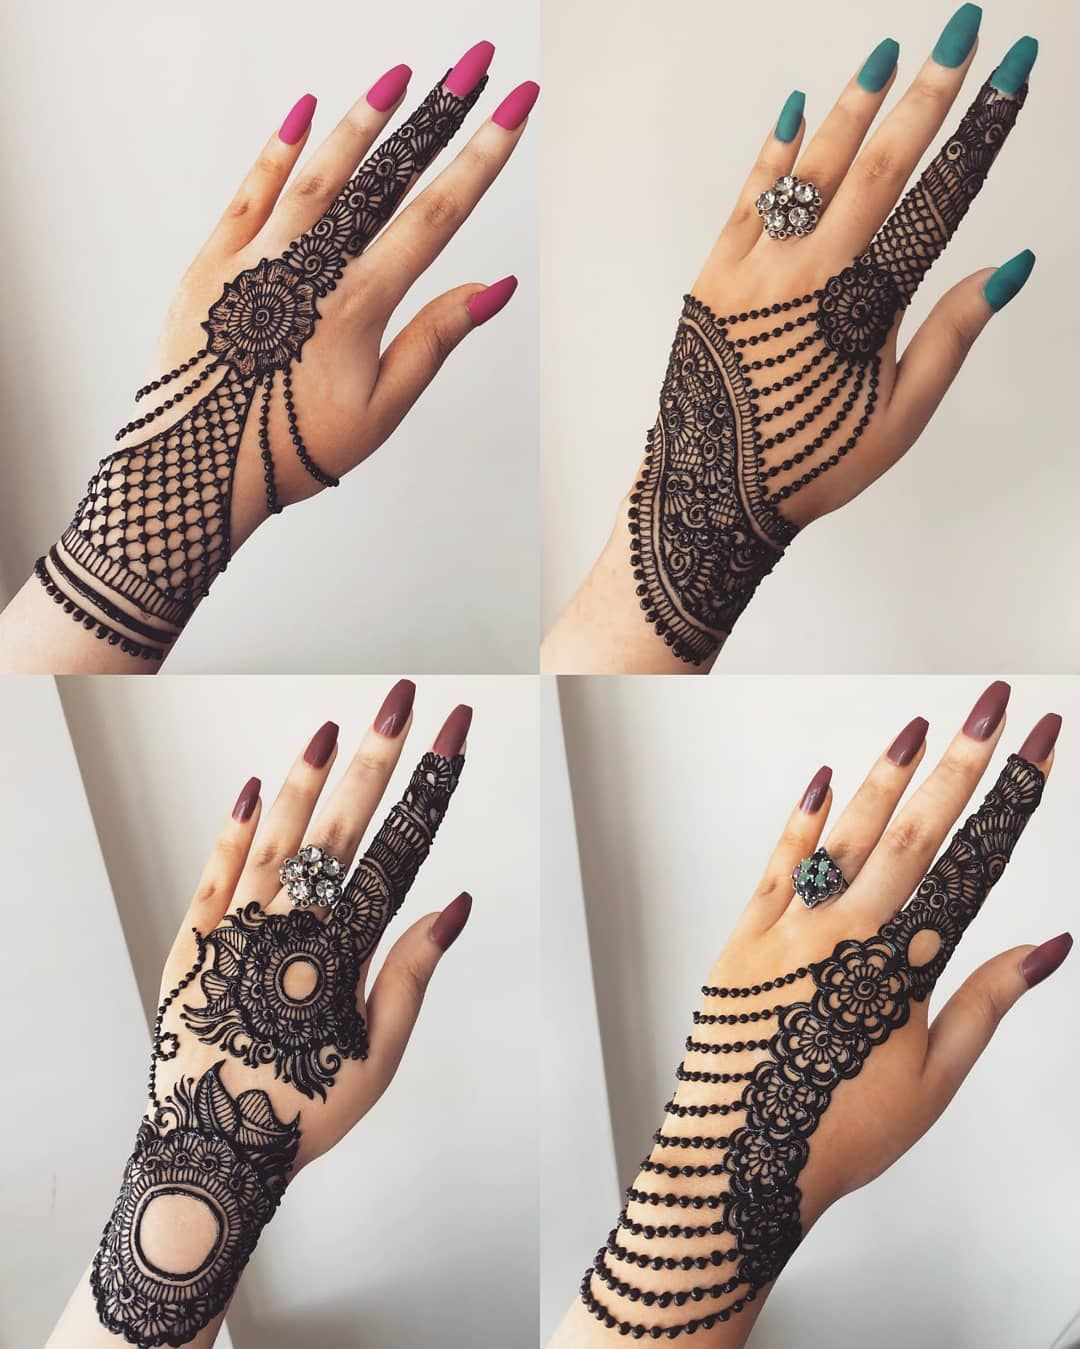 Mehndi Design Which One 1 4 Yes Or No Leave Your Comment